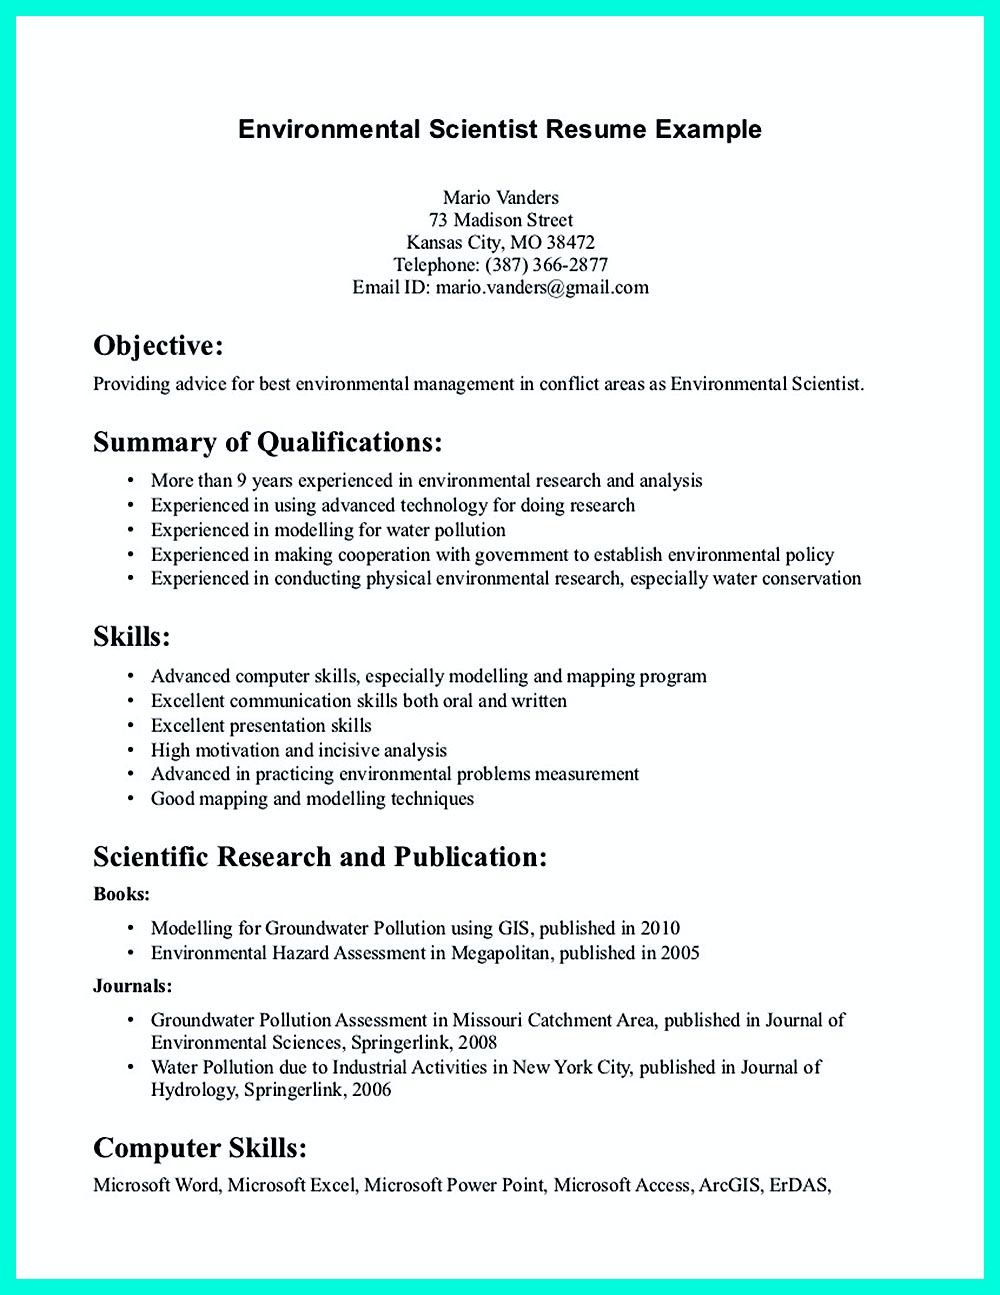 Data Scientist Resume Sample Data Scientist Resume Include Everything About Your Education